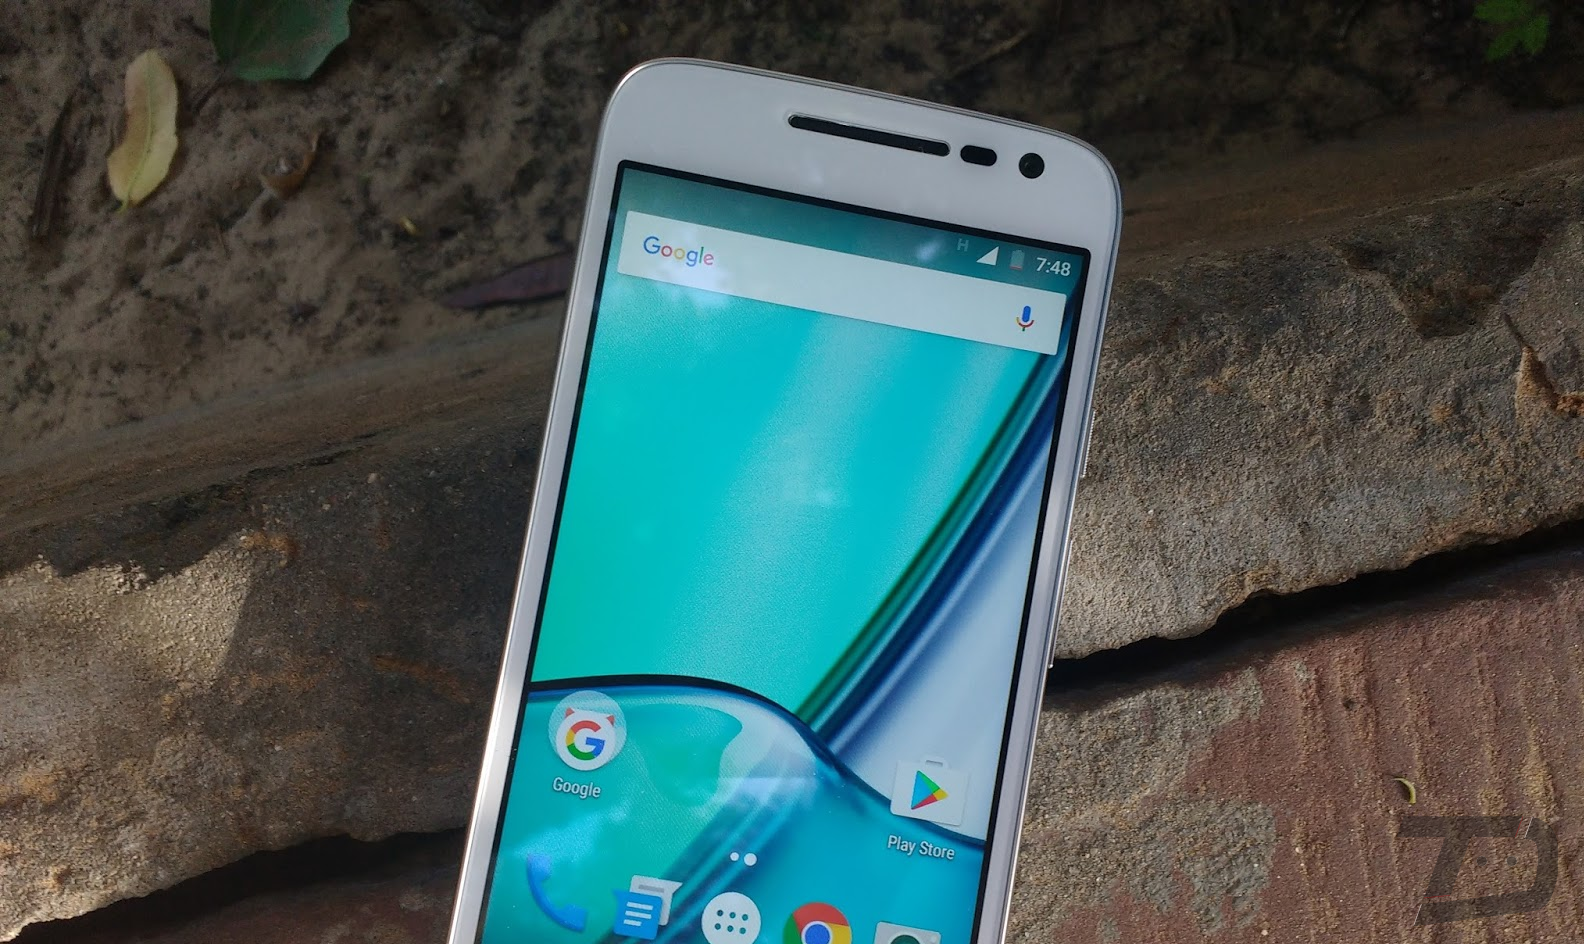 Moto G4 Play to receive Android Nougat update in June